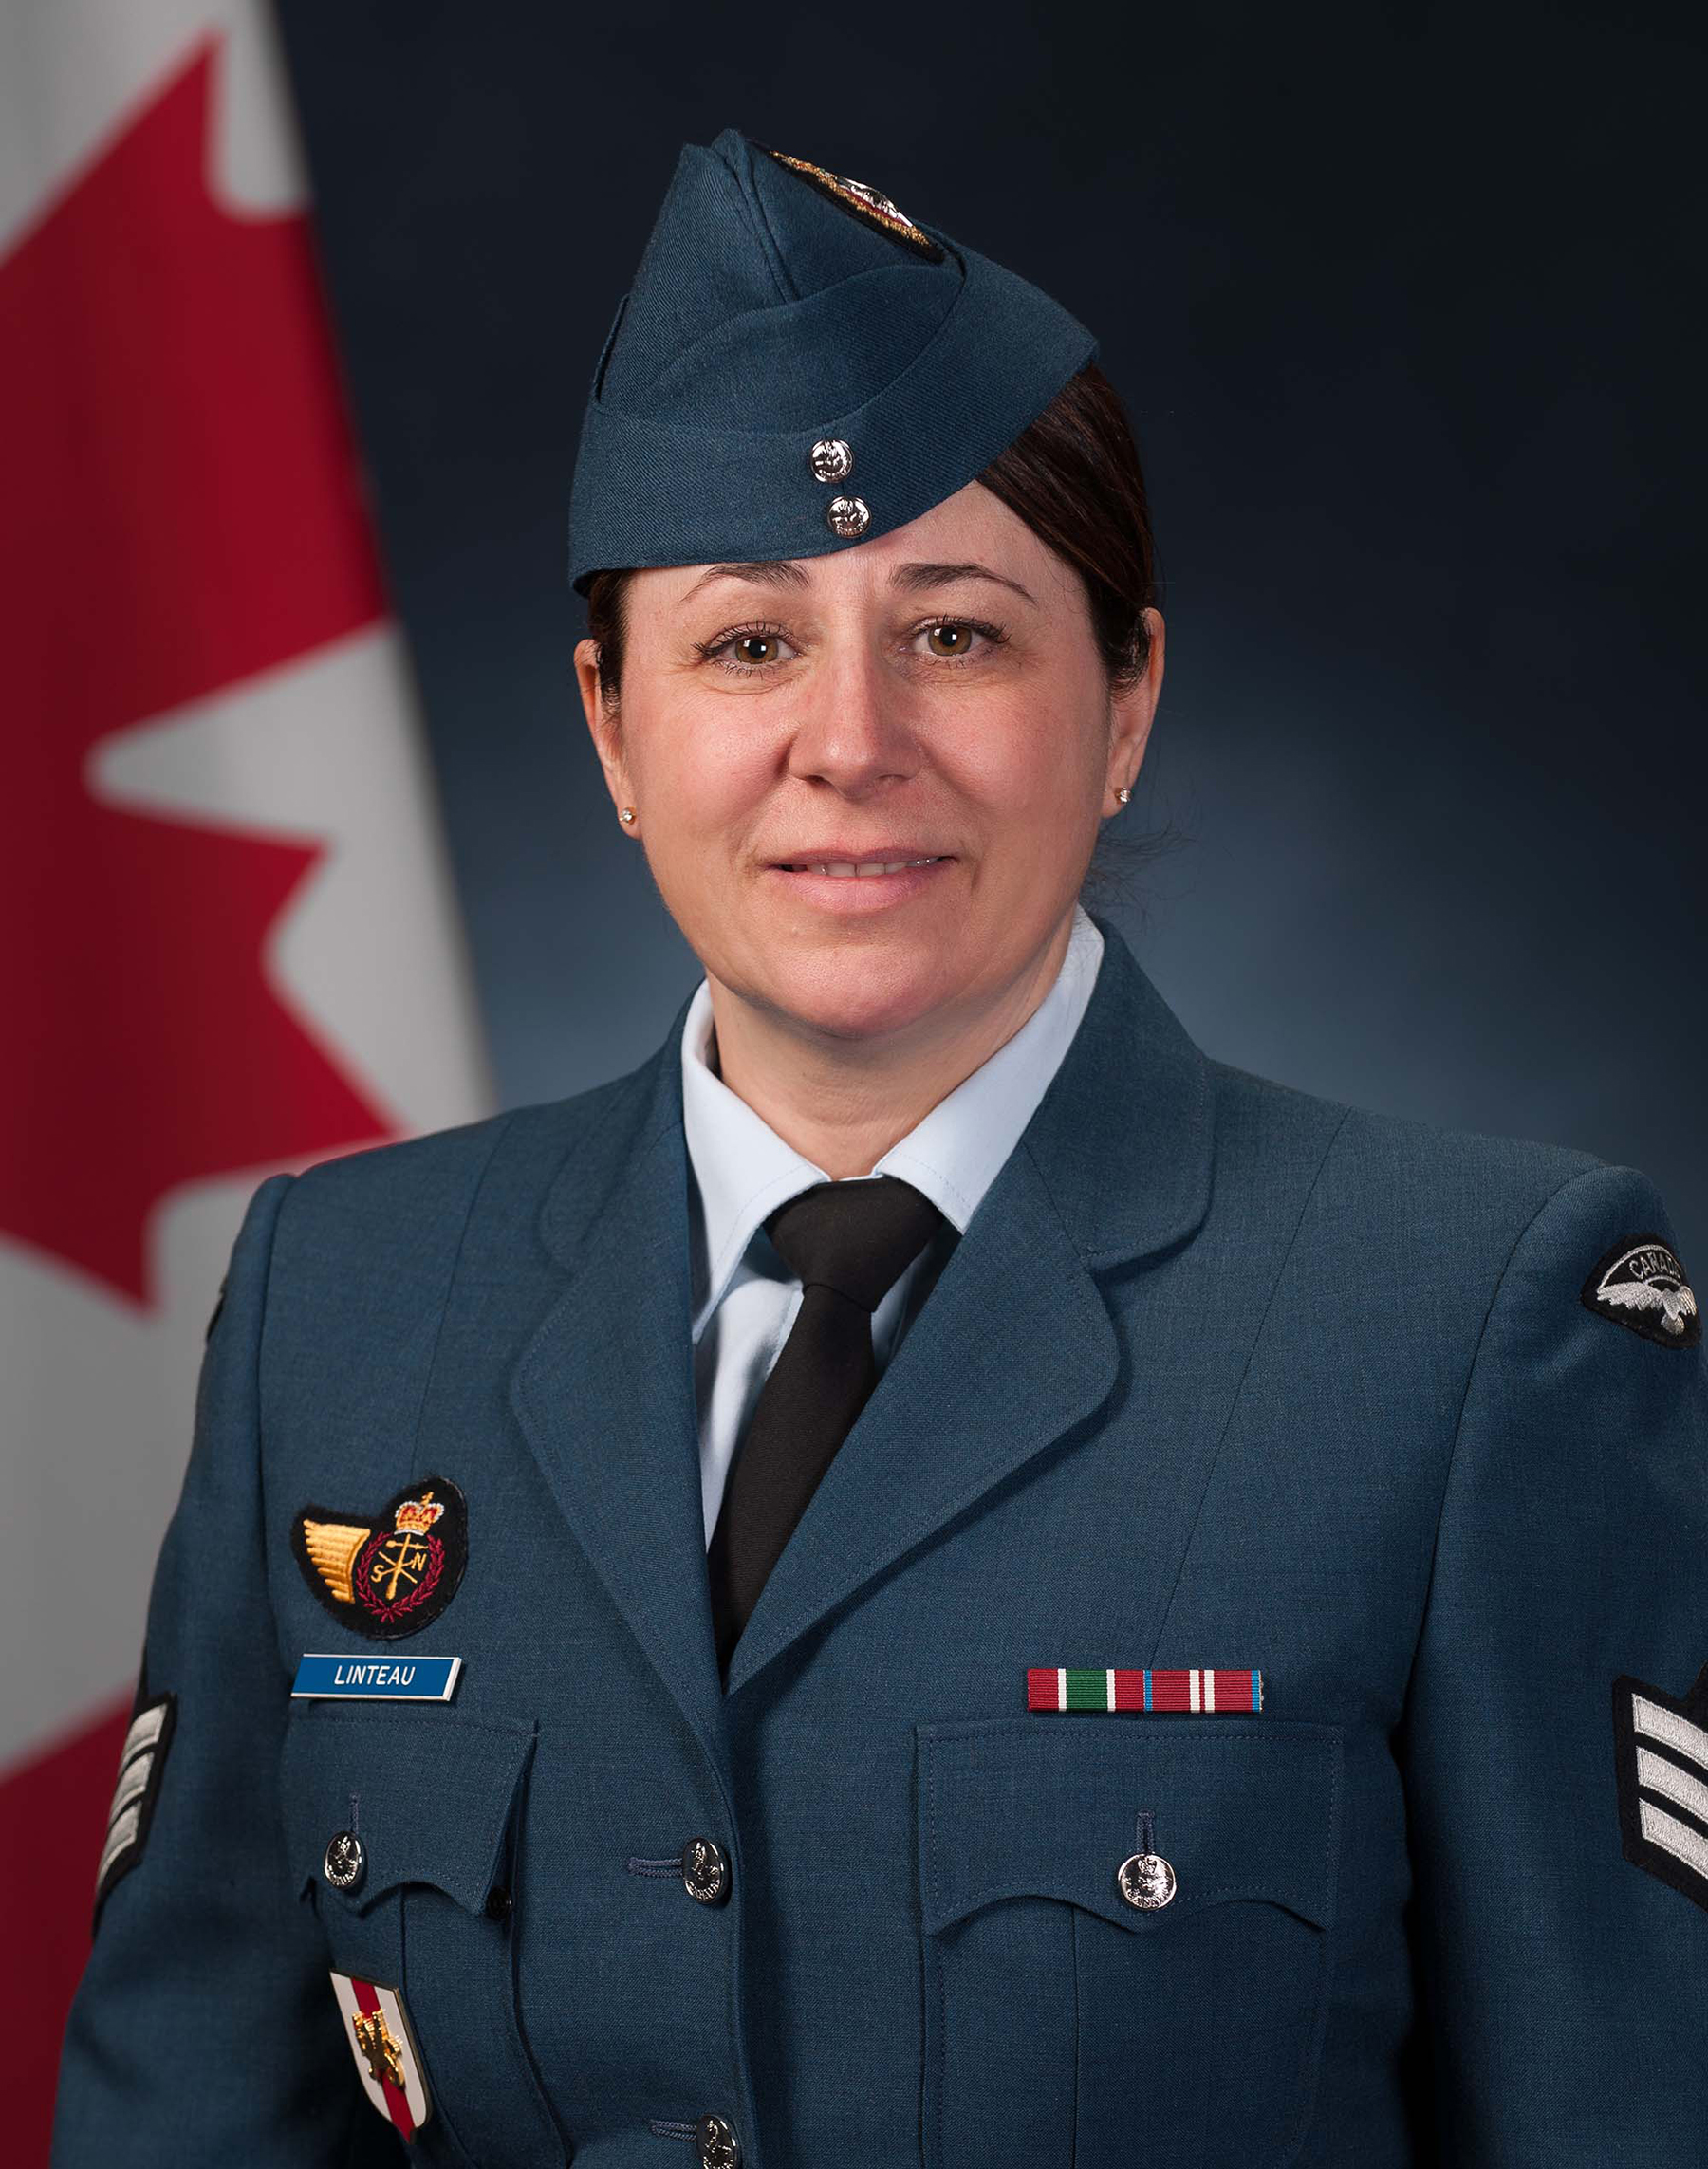 Sergeant Caroline Linteau works as a meteorology technician and instructor with the Royal Canadian Air Force.